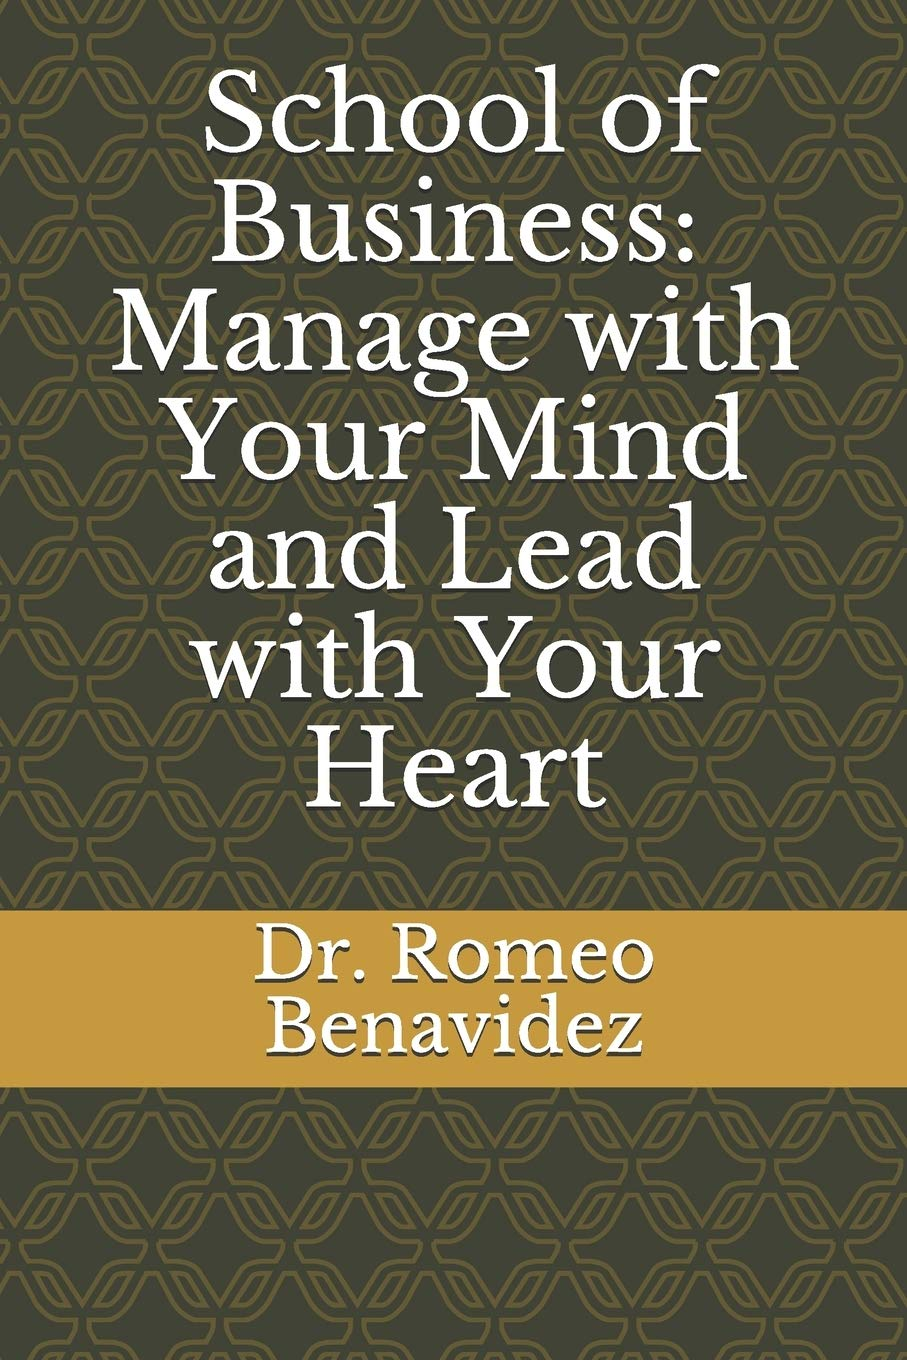 School of Business: Manage with Your Mind and Lead with Your Heart: Manage with Your Mind and Lead with Your Heart